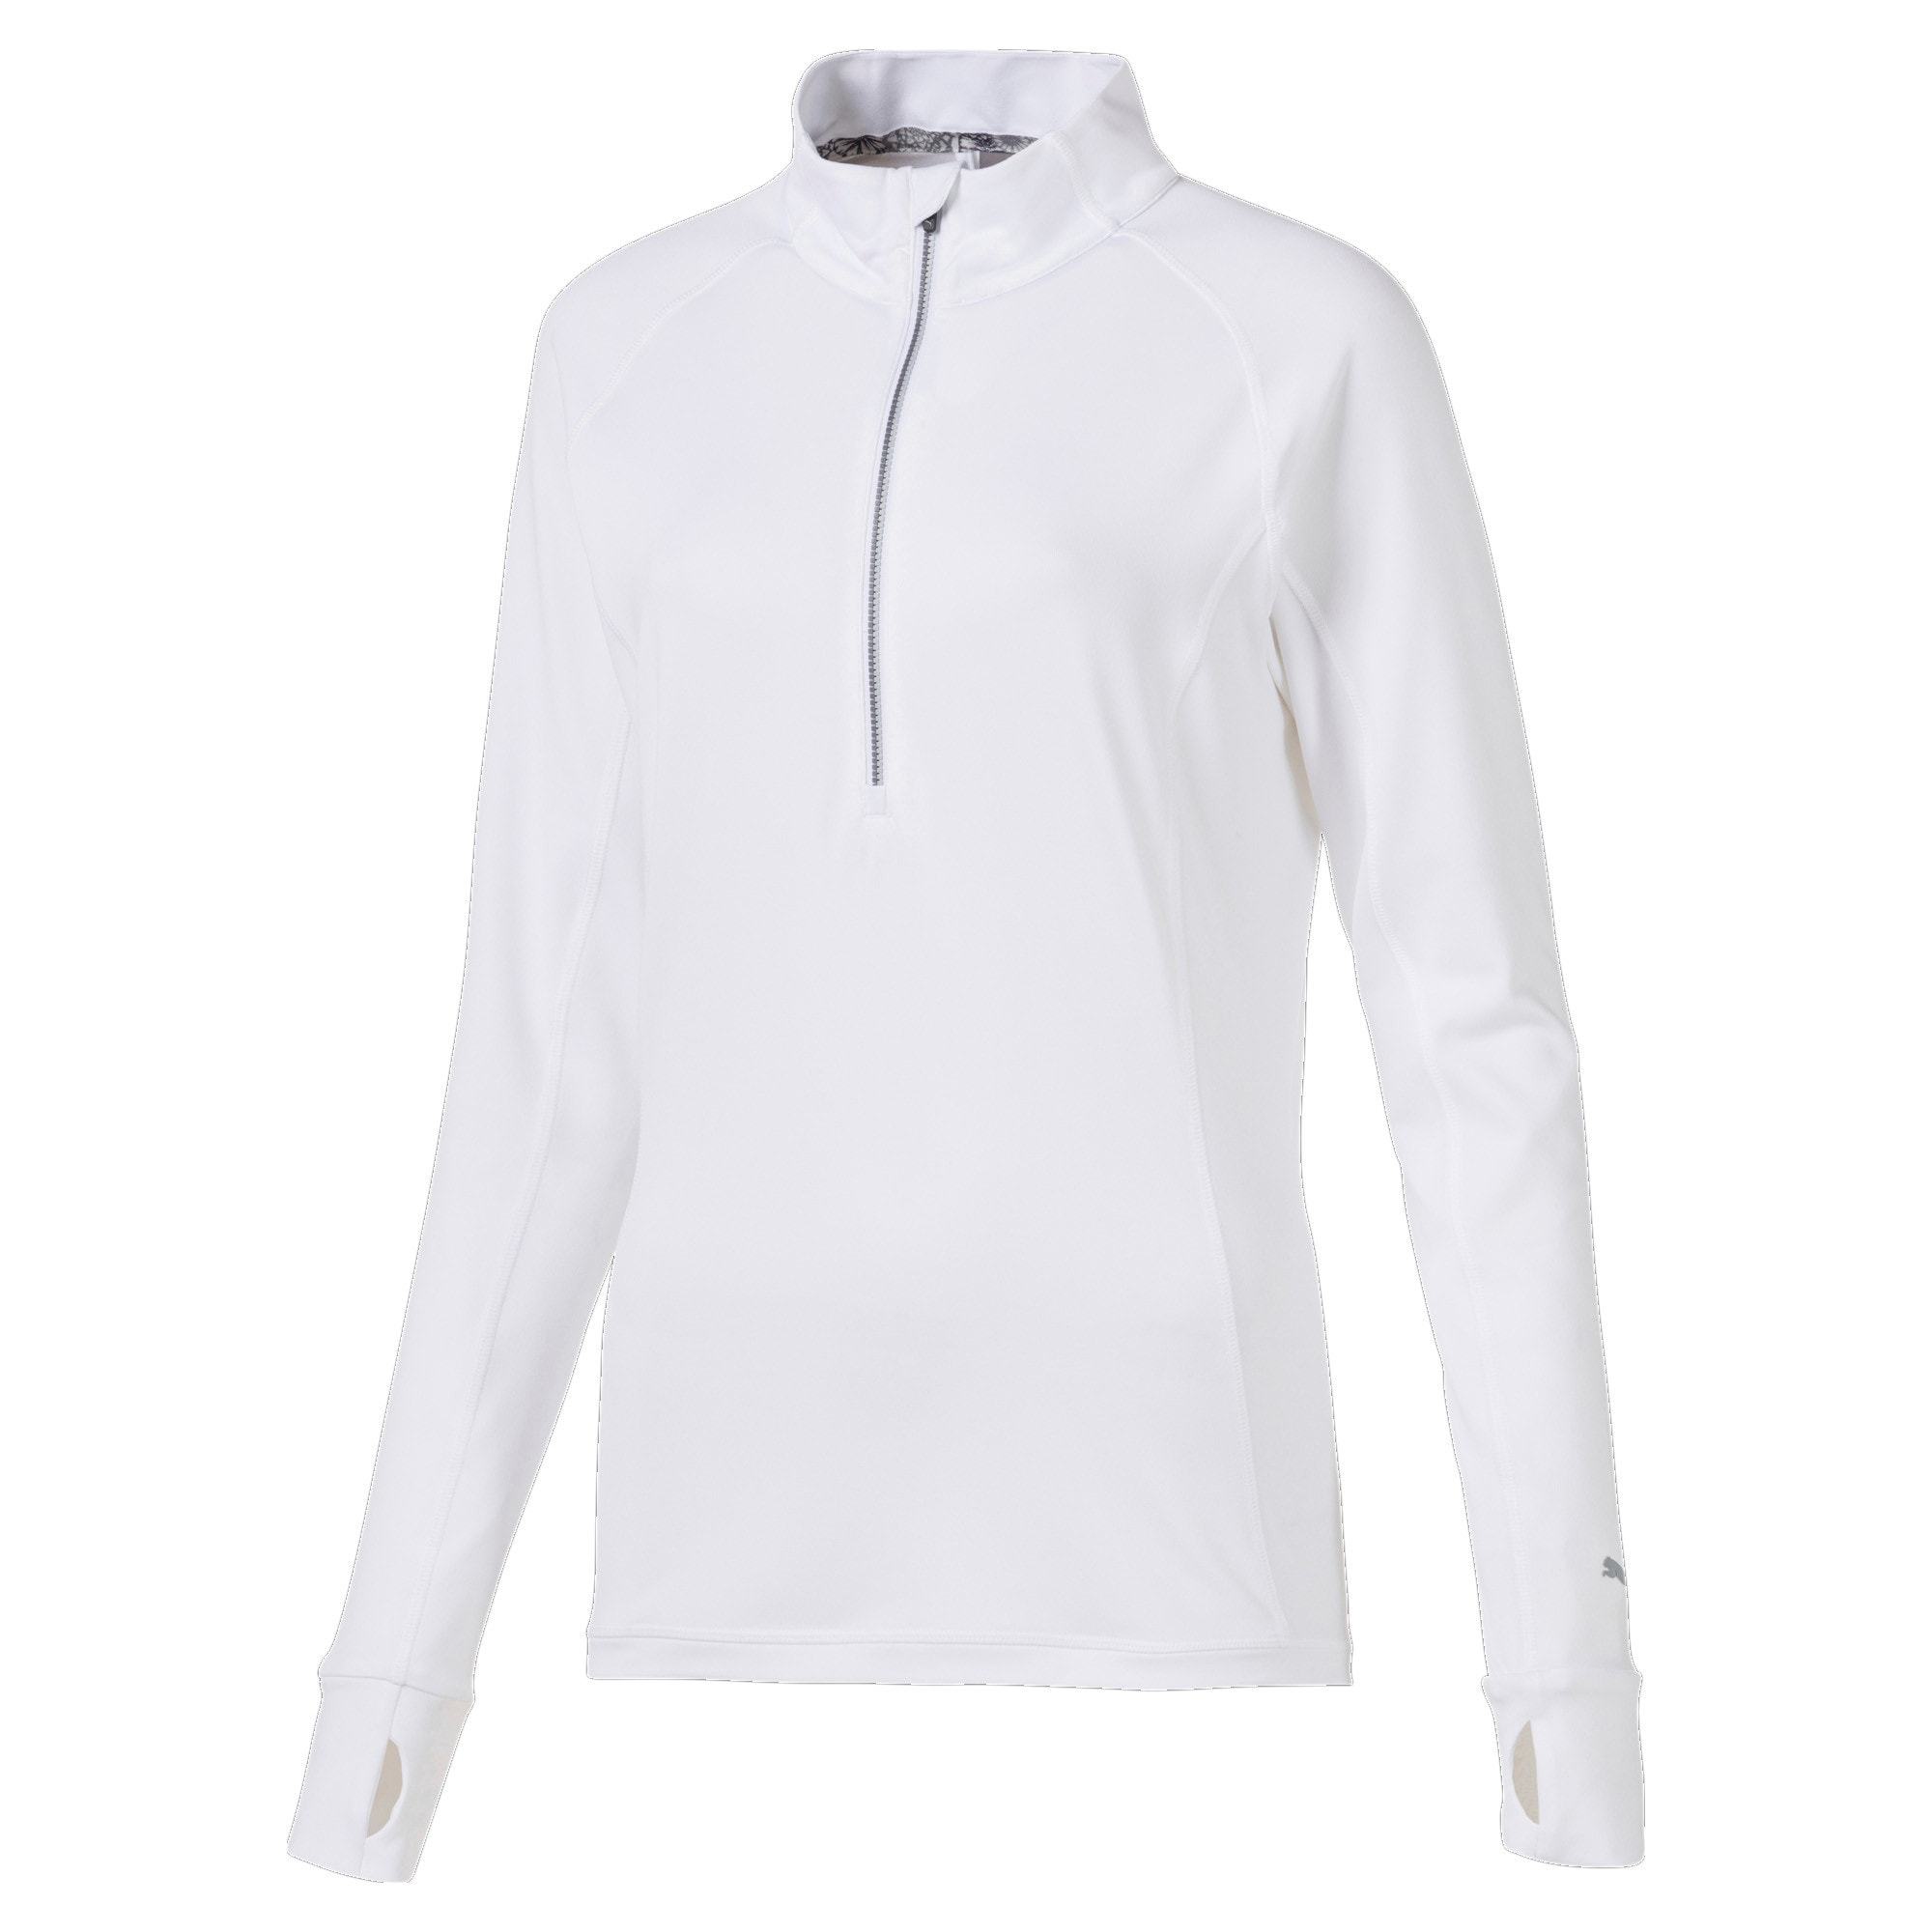 Thumbnail 1 of Rotation 1/4 Zip Women's Golf Pullover, Bright White, medium